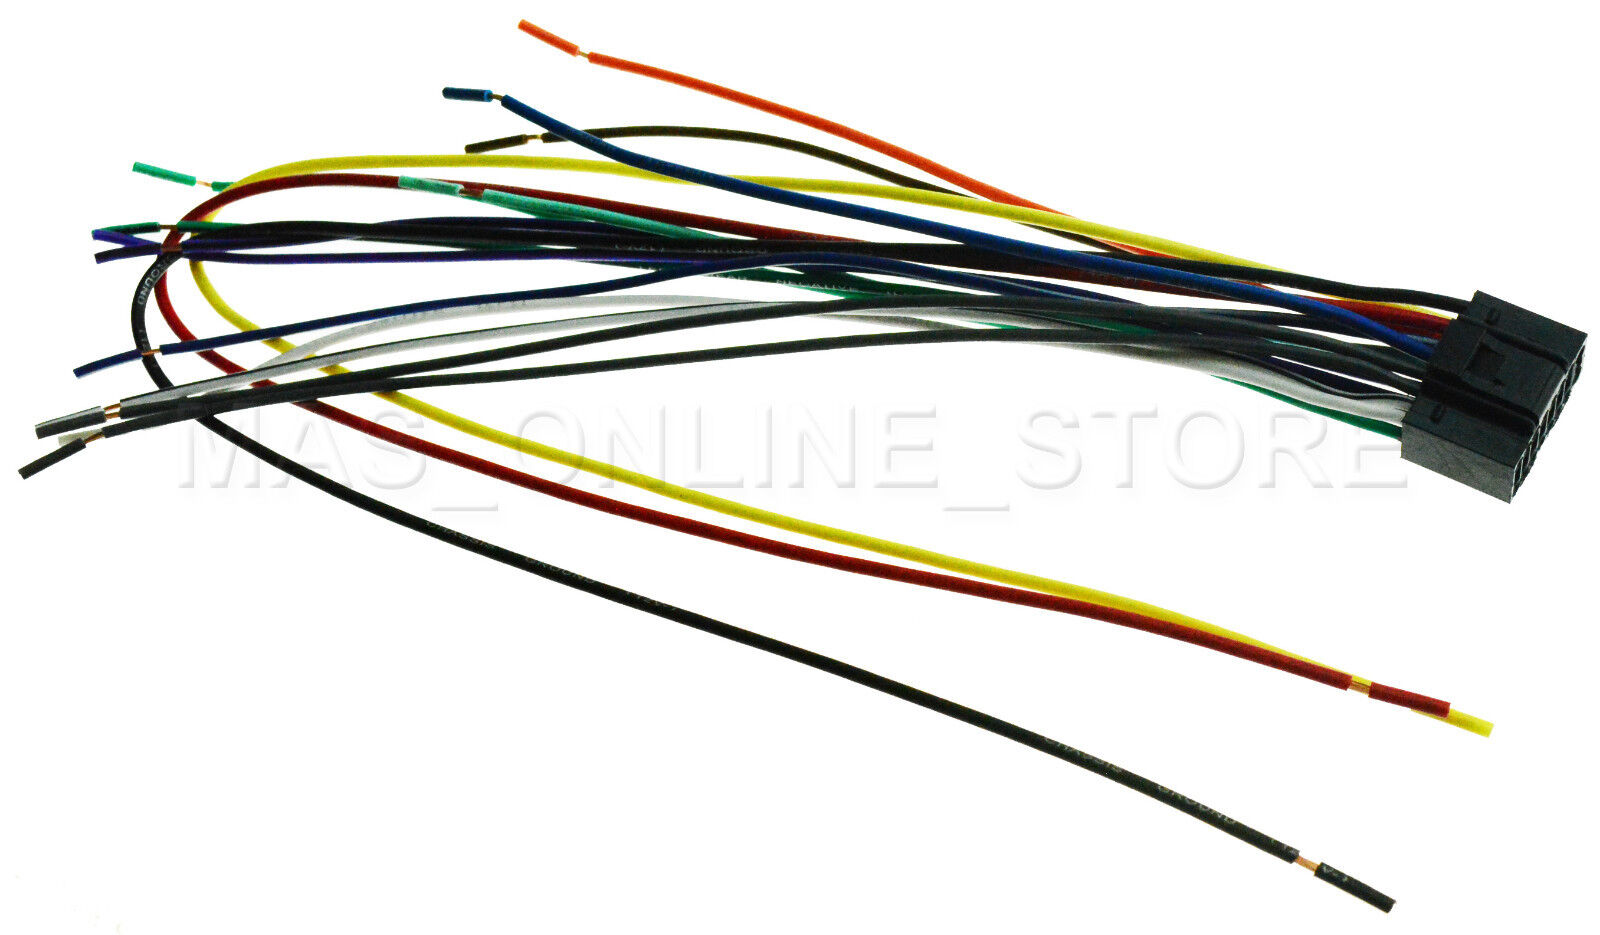 Wire Harness For Kenwood Kdc X997 Kdcx997 Pay Today Ships Ebay Well As Wiring Picture 1 Of 4